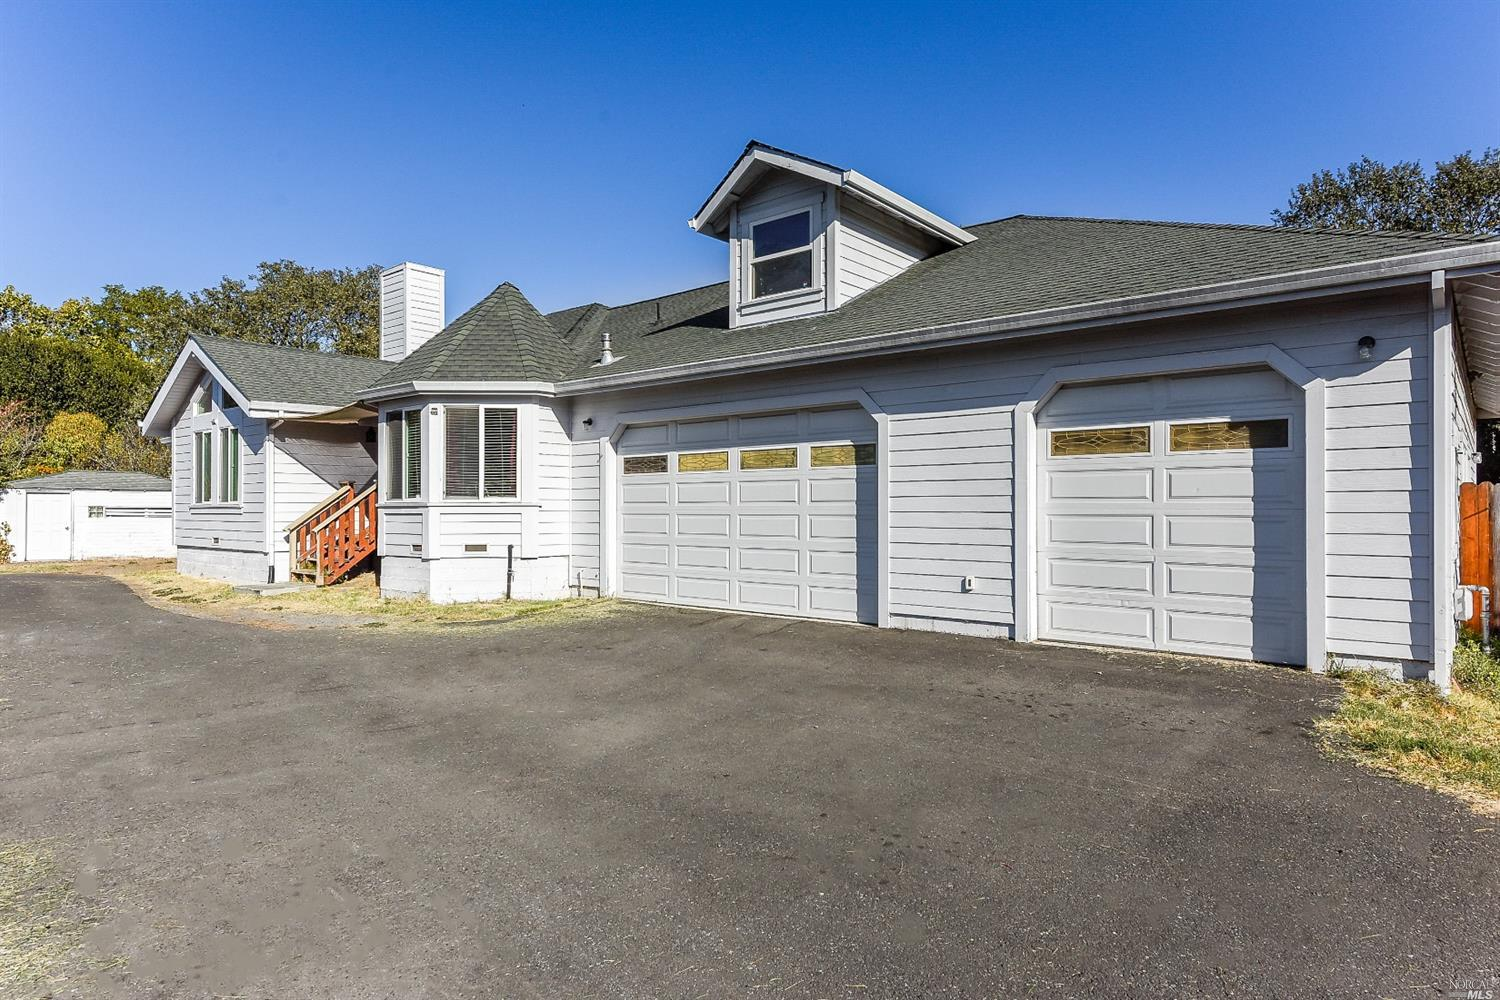 Hard to find spacious living in Santa Rosa, kitchen with granite counters, 3 car garage, in town location with a country setting on a large lot, yet minutes to Shopping and commuter access, beautiful 6 bedroom home! Imagine the possibilities: extended family, etc.etc.etc. you decide!